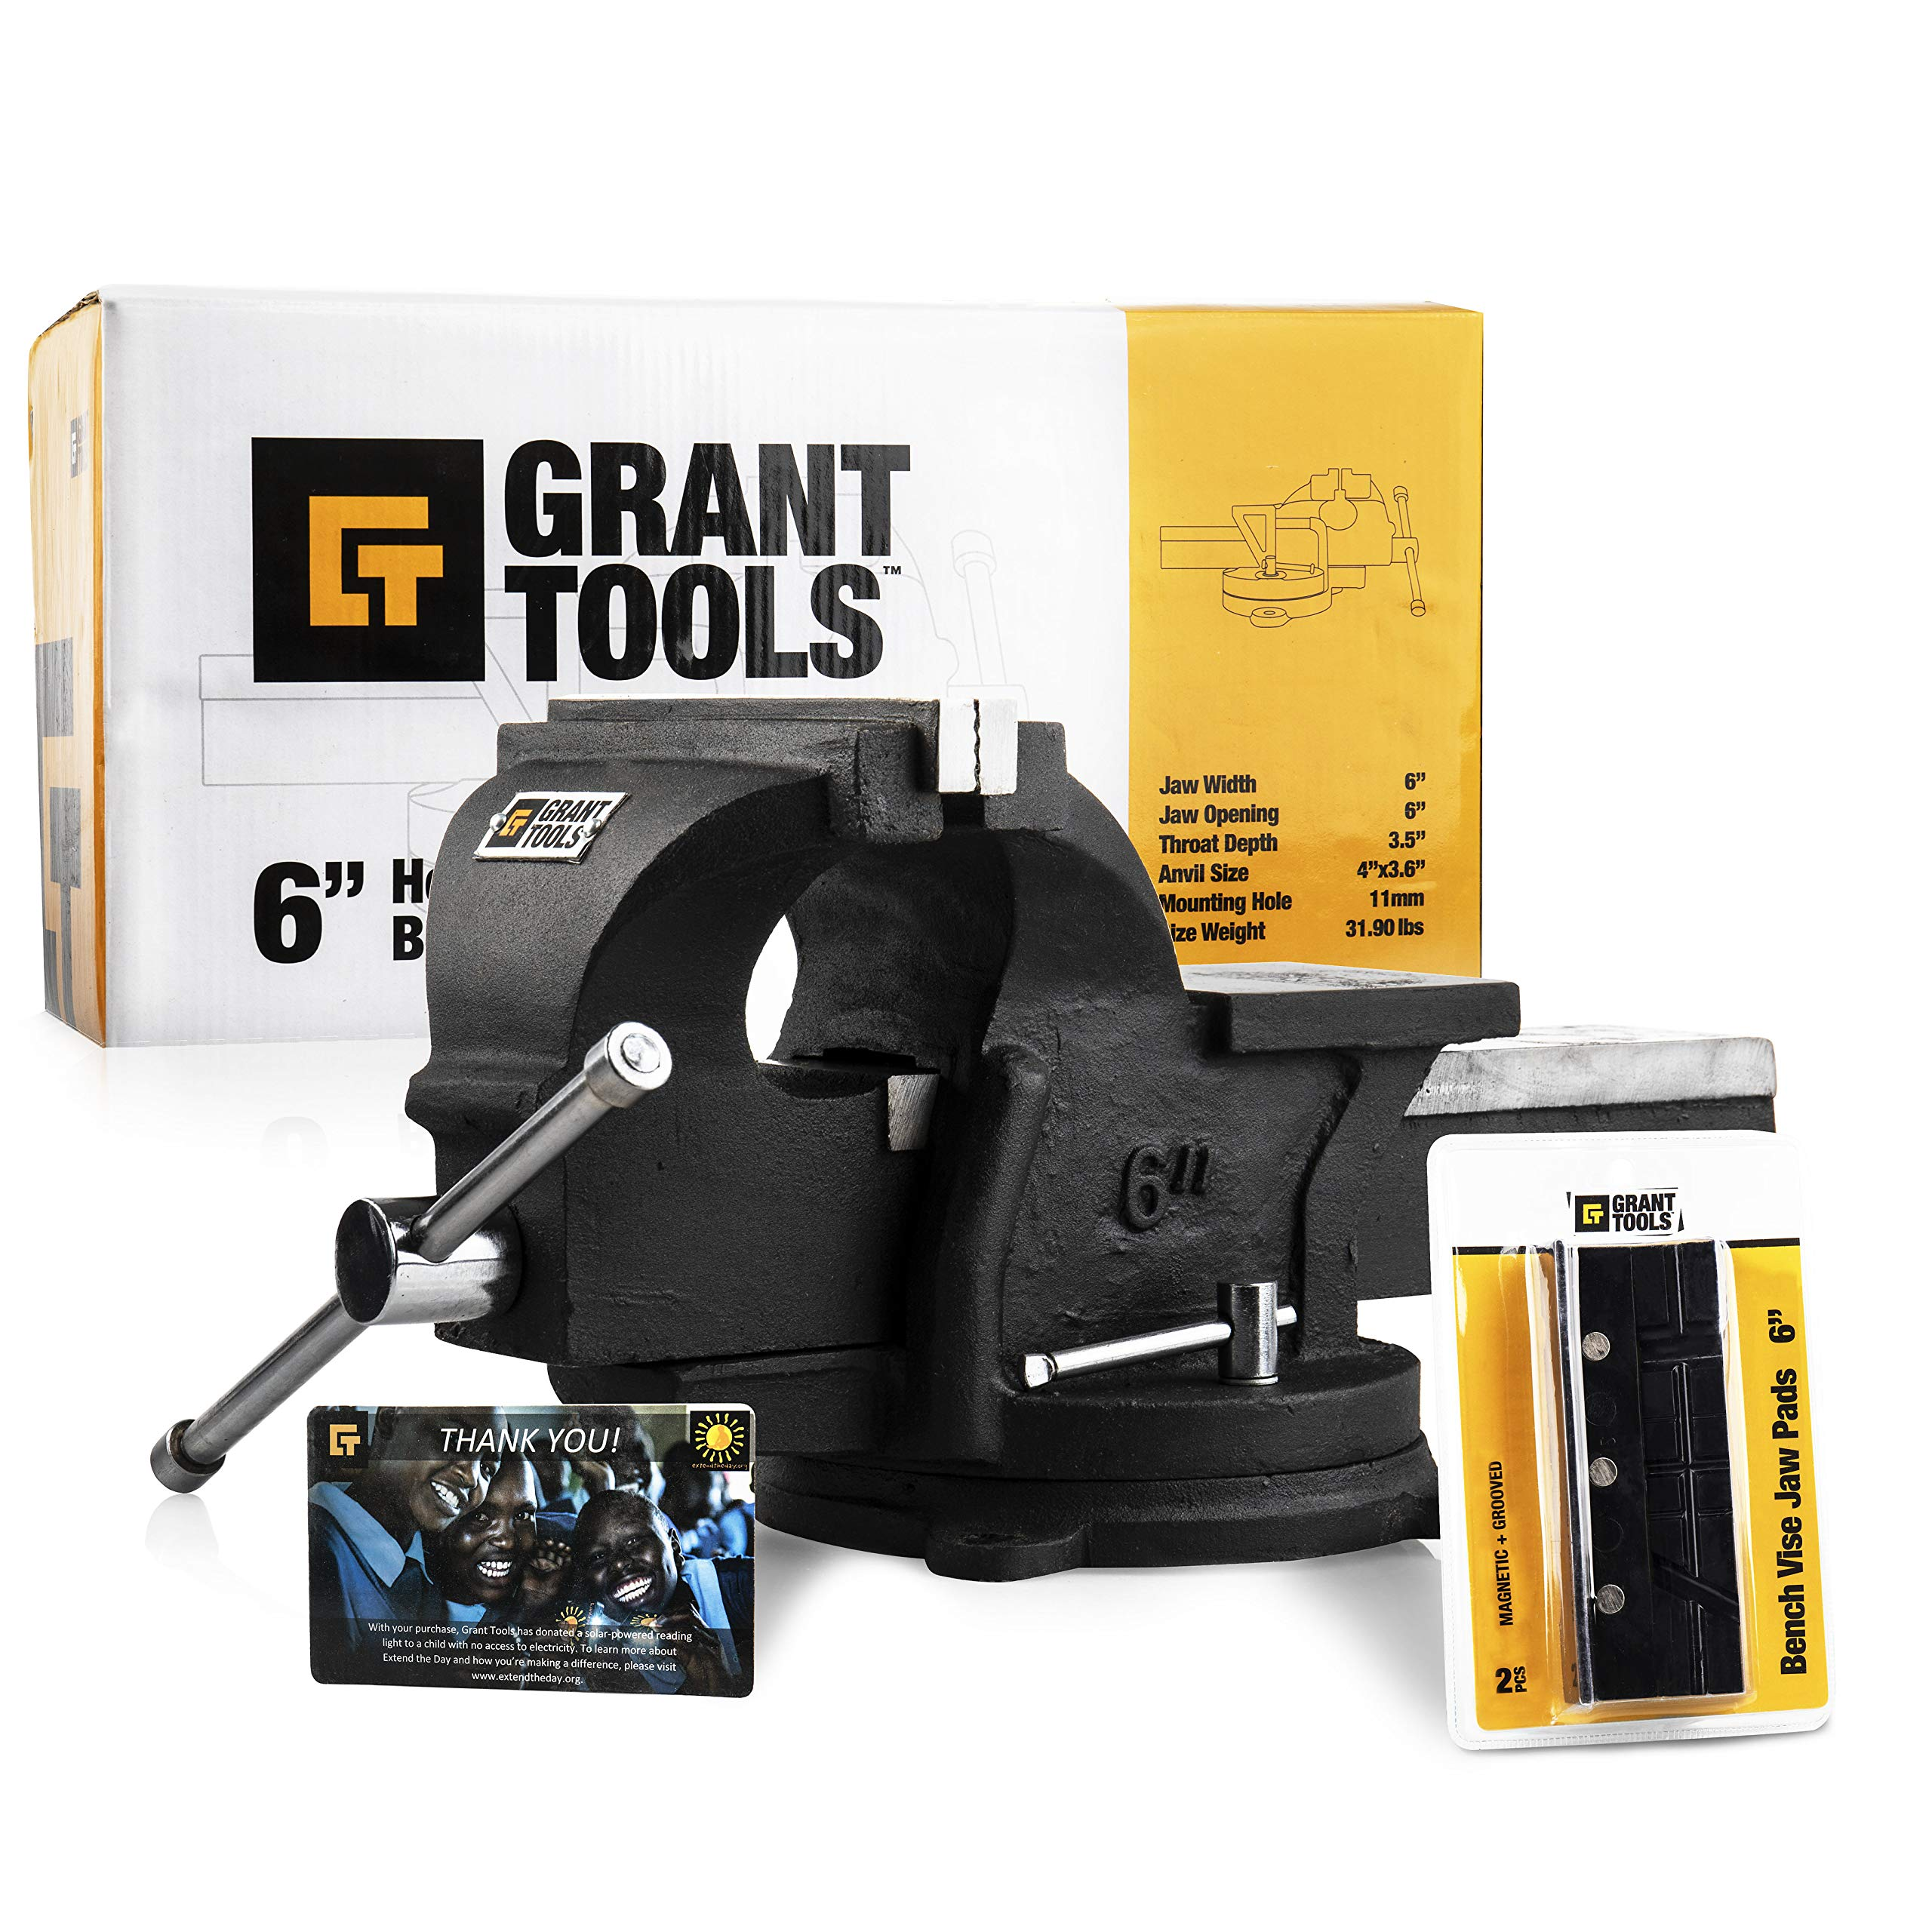 Grant Tools 4'' Heavy Duty Swivel Bench Vise | 2 Vise Jaws Included | With Each Vise Sold 1 Solar Light is Donated to a Child Abroad in Need via Extend The Day (4'') by Grant Tools